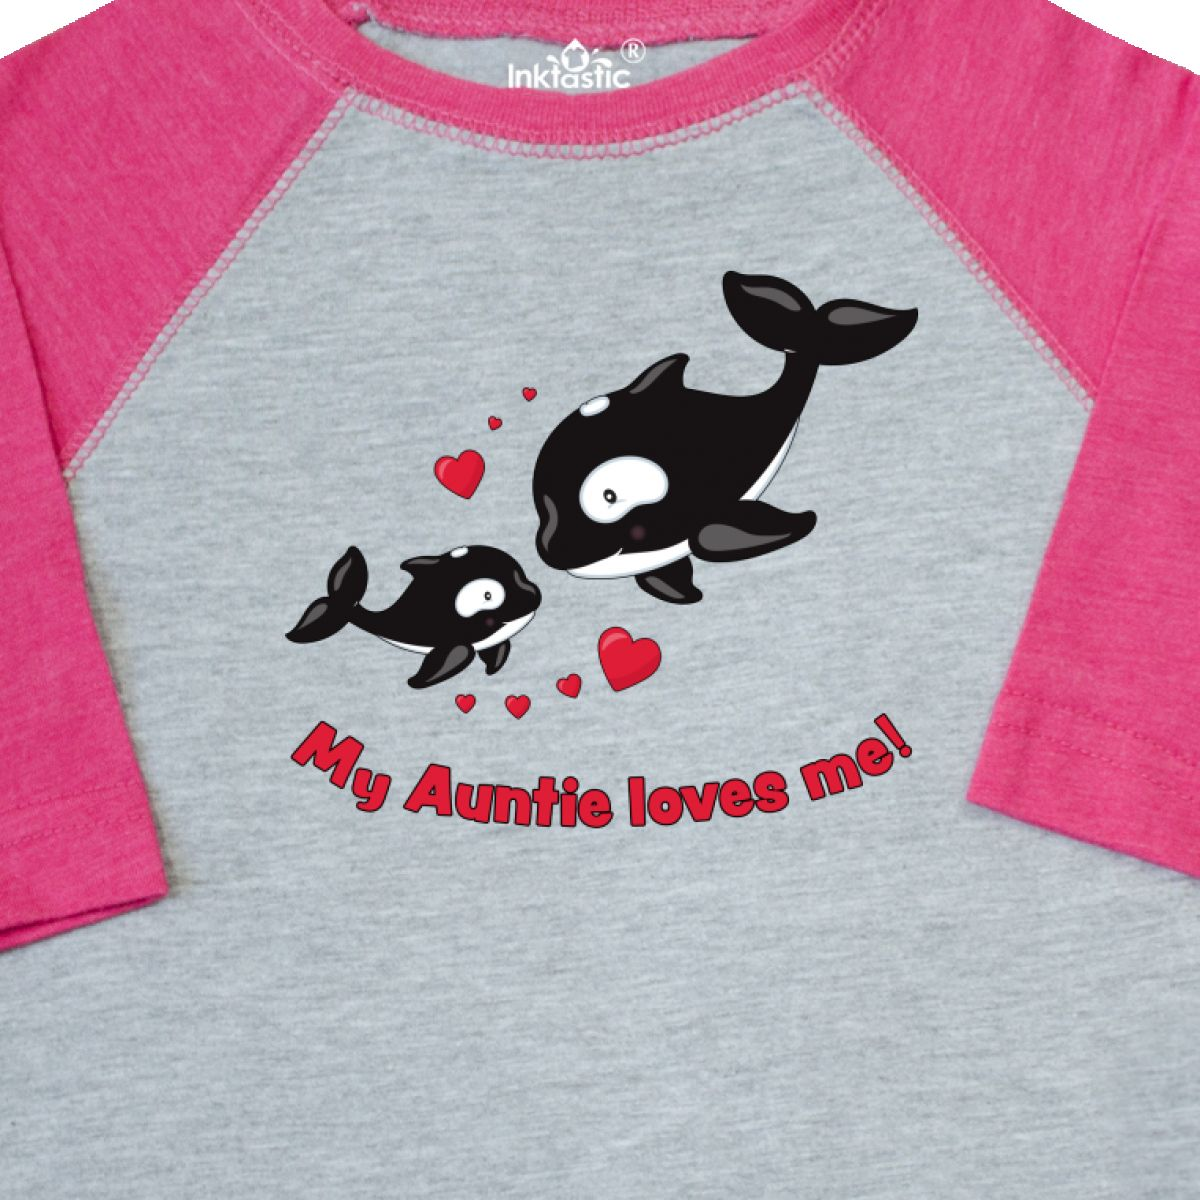 Inktastic My Auntie Loves Me Toddler T-Shirt Family Whales Orca Killer Seaworld